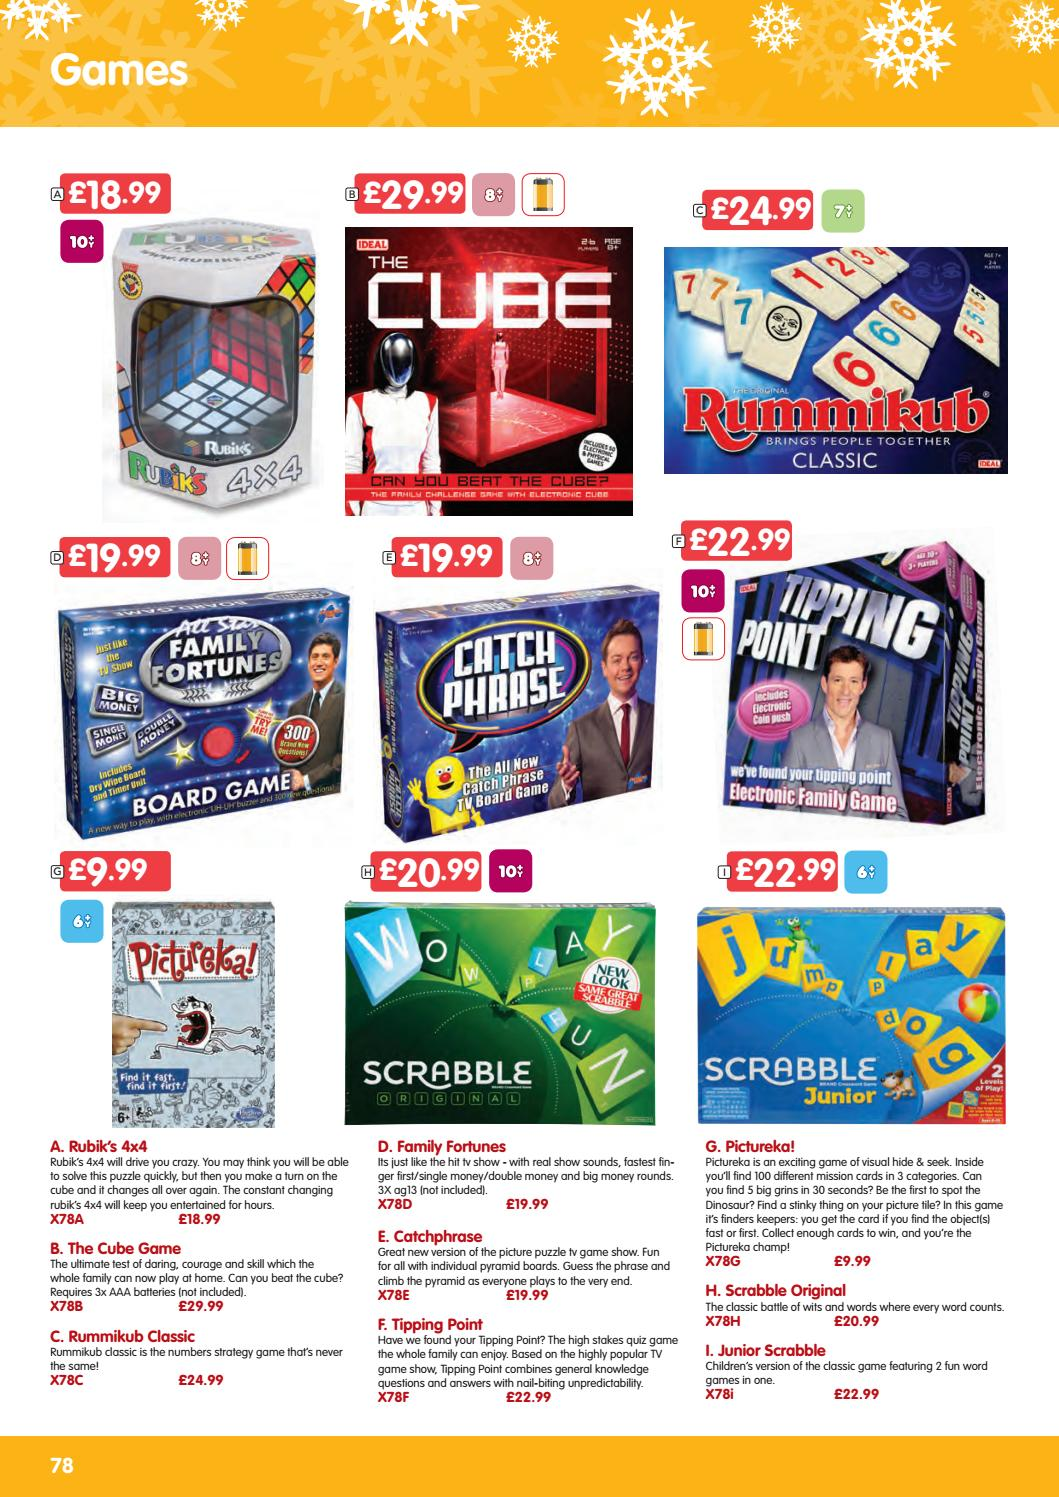 AB Gee Christmas Toys & Games 2016 by STAGG Distributors - issuu